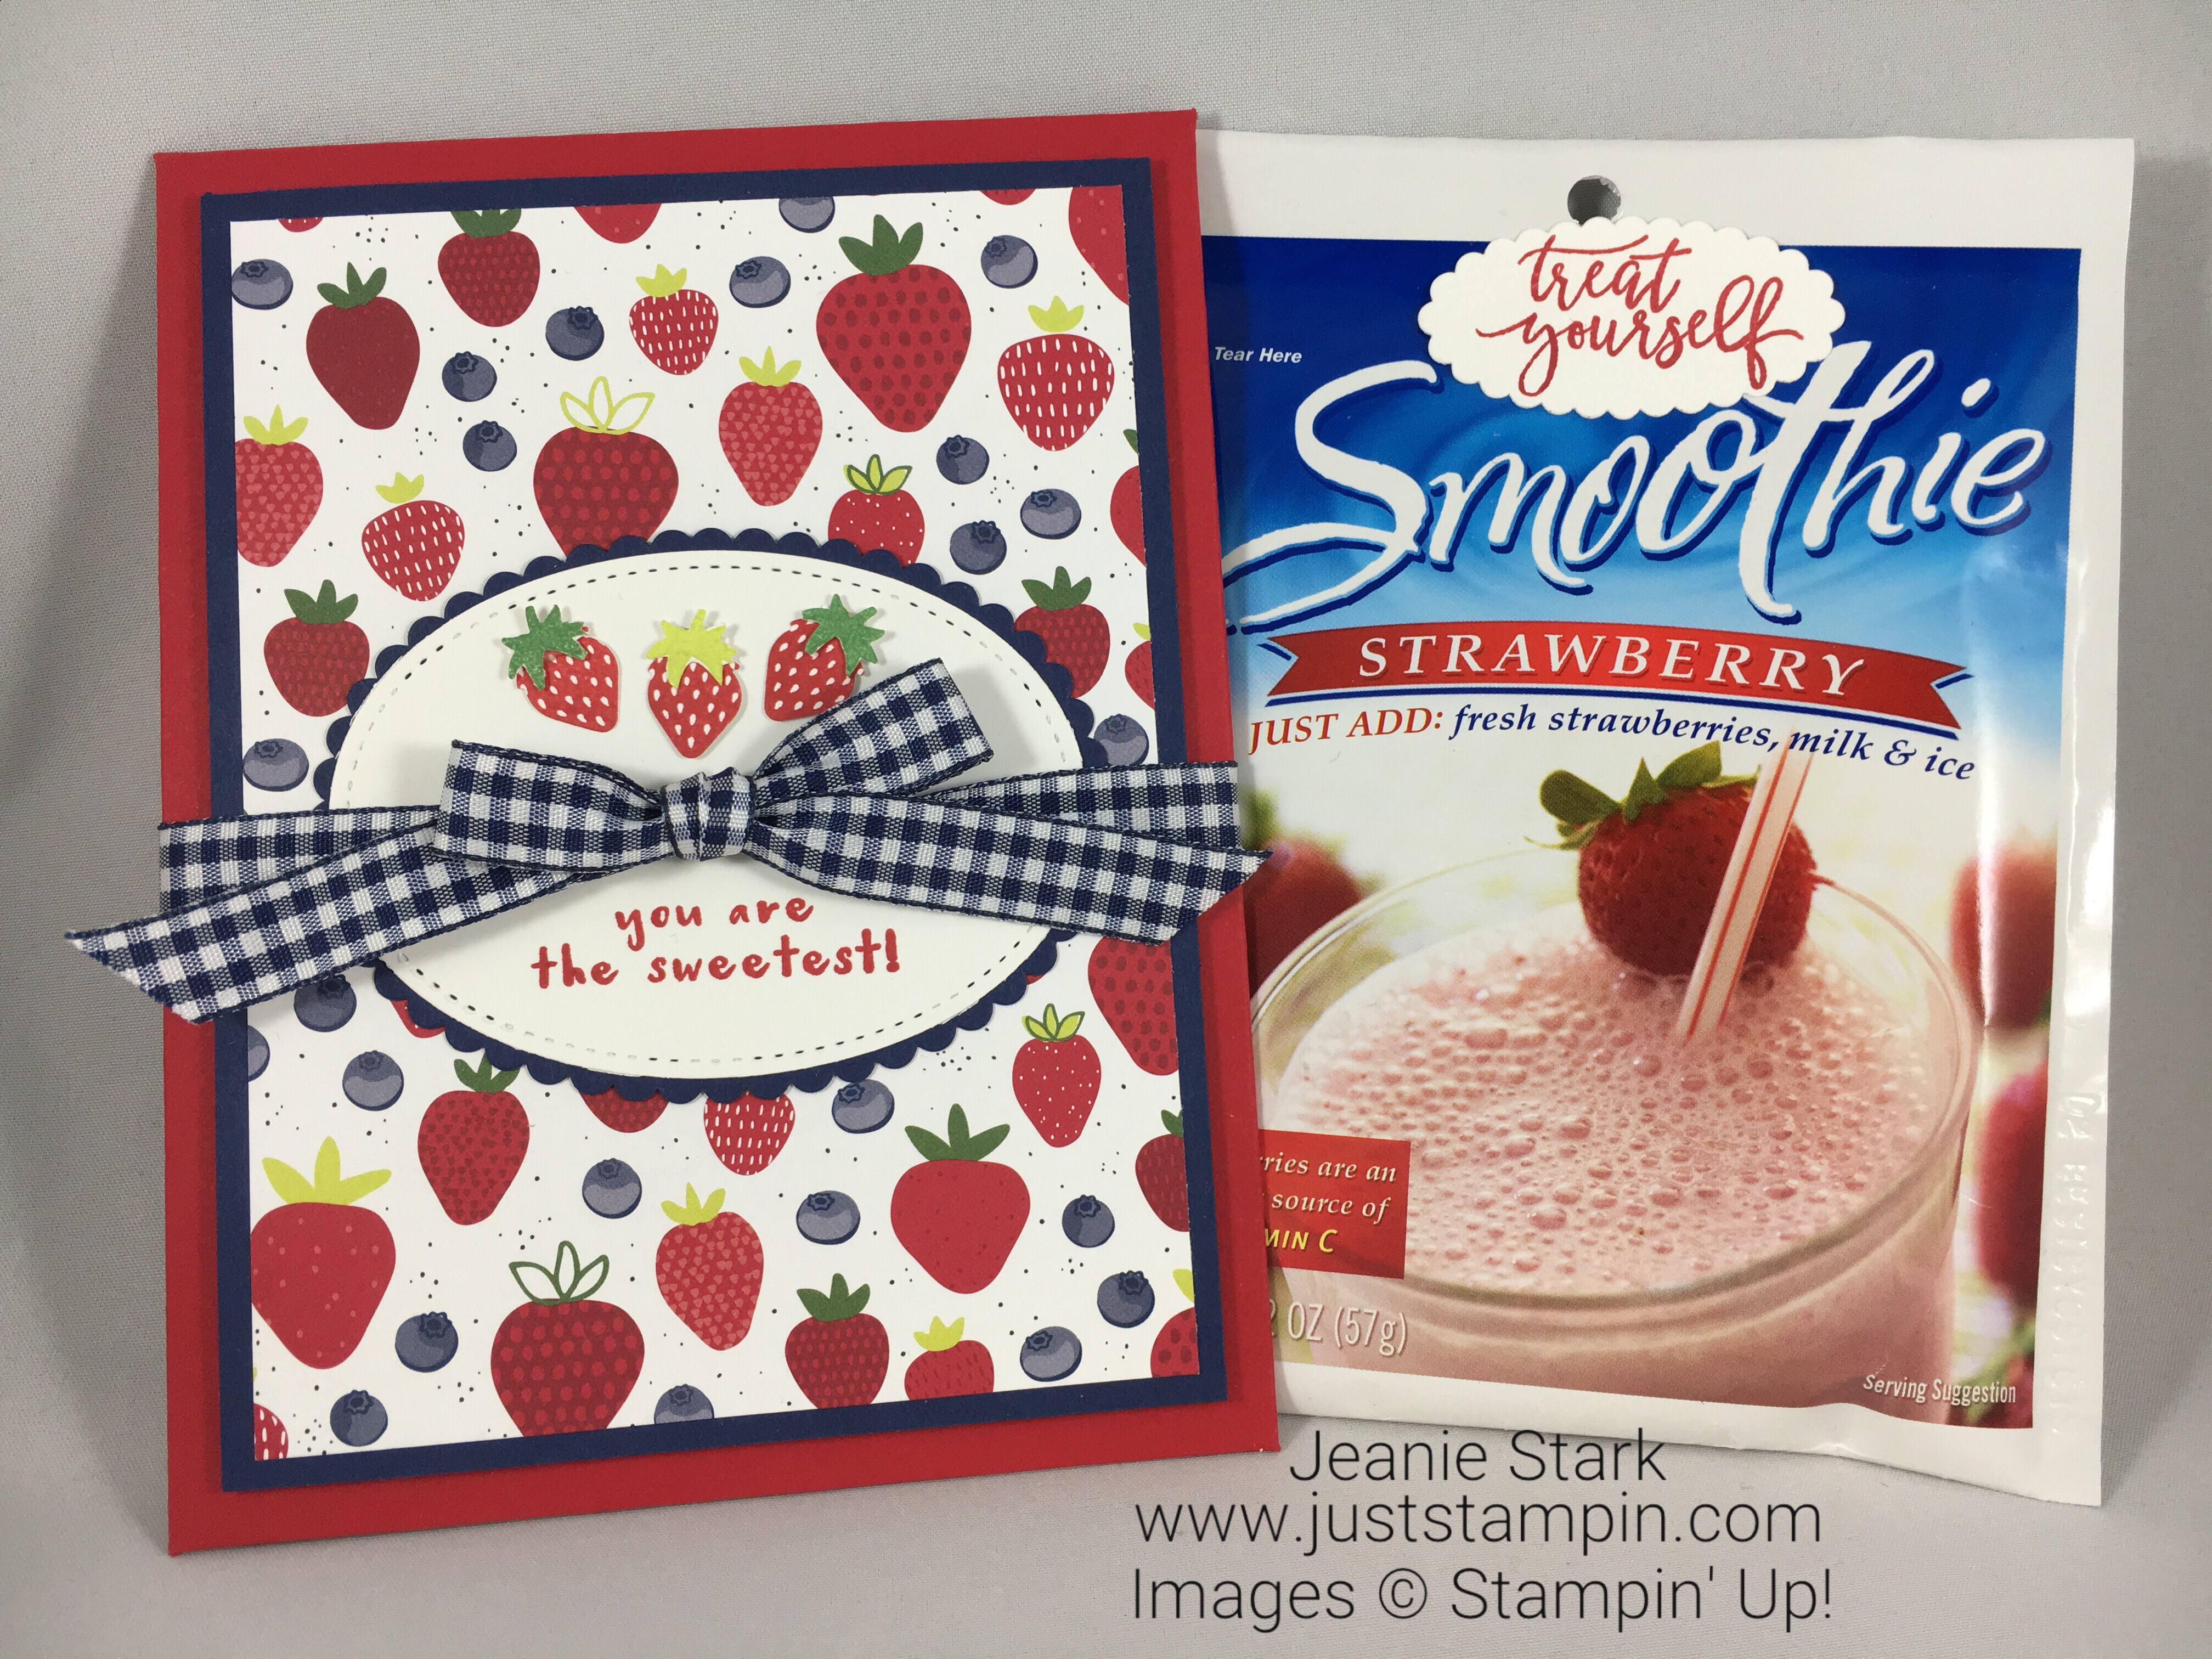 Stampin Up Envelope Punch Board and Fruit Basket Bundle envelope card idea to hold a special treat - Jeanie Stark StampinUp